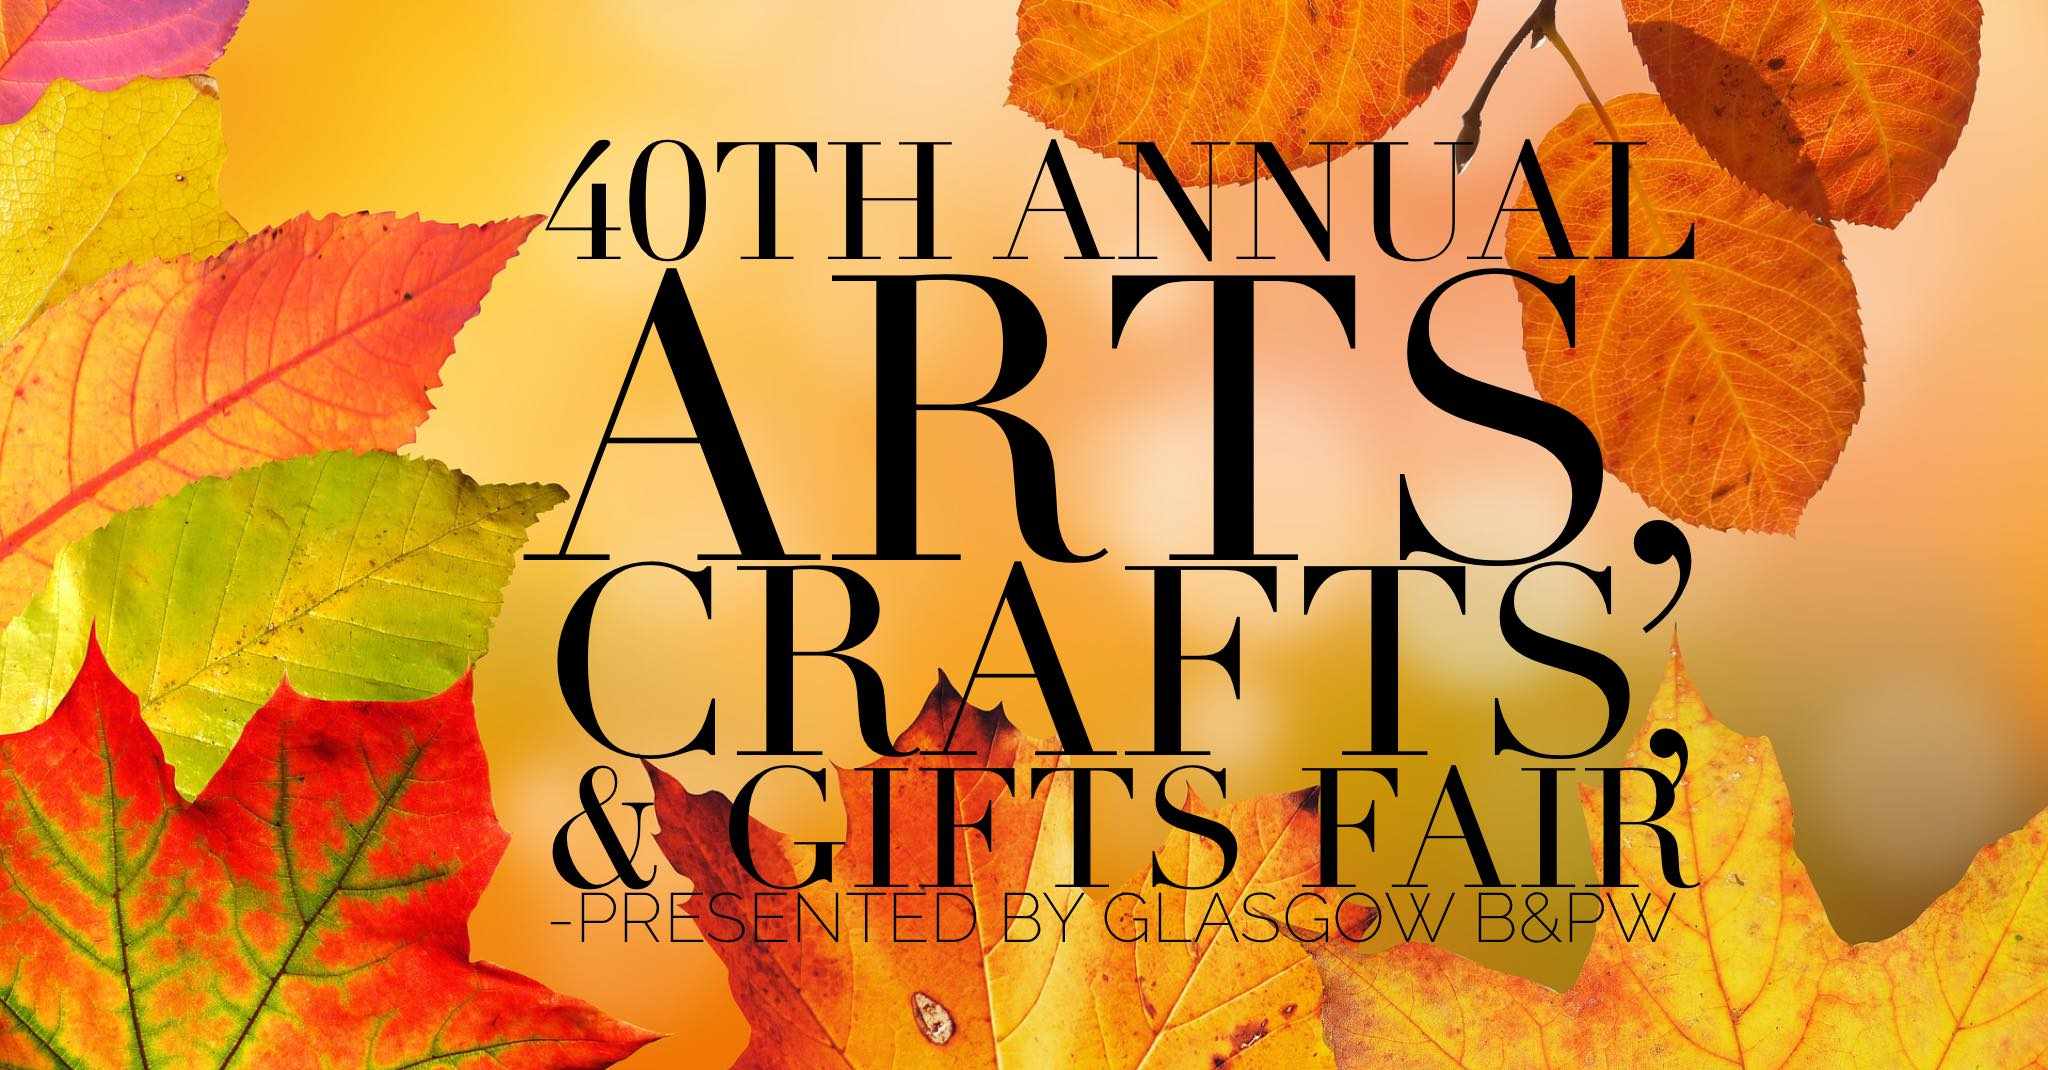 INTERVIEW: Nancy talks about Glasgow B&PW Arts and Crafts Fair